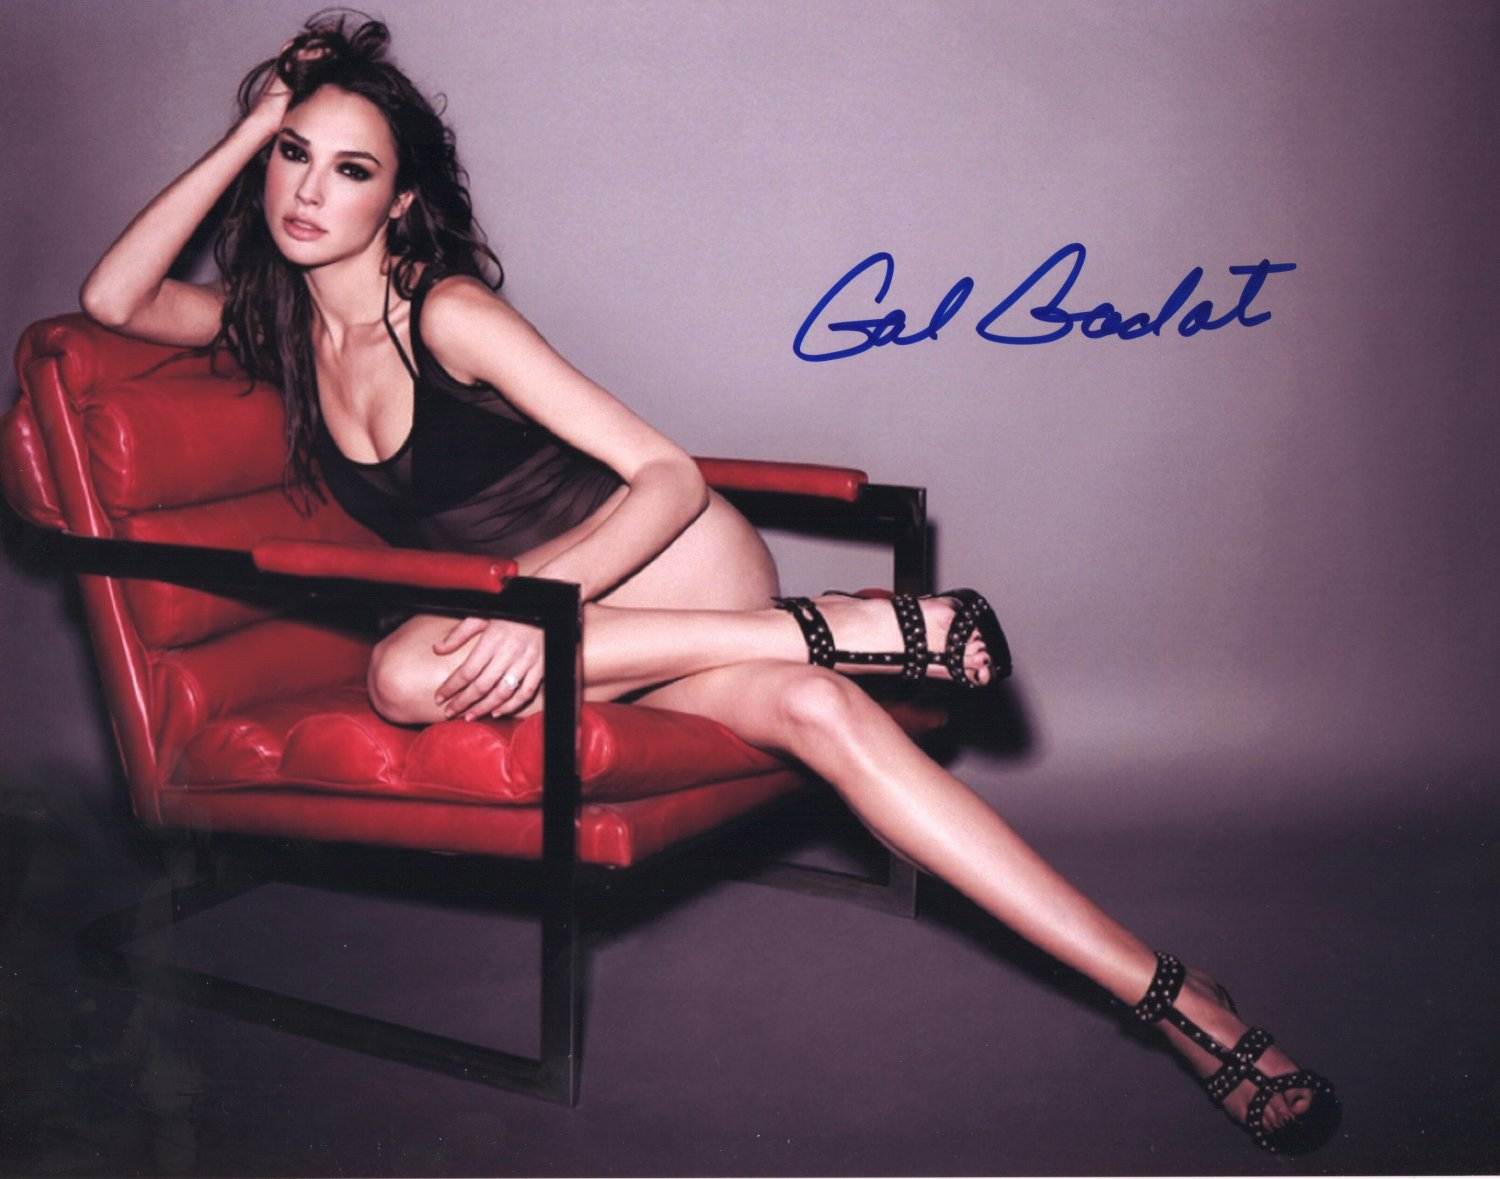 GAL GADOT - ULTRA SEXY STAR - WONDER WOMAN - HAND SIGNED AUTOGRAPHED PHOTO WITH COA